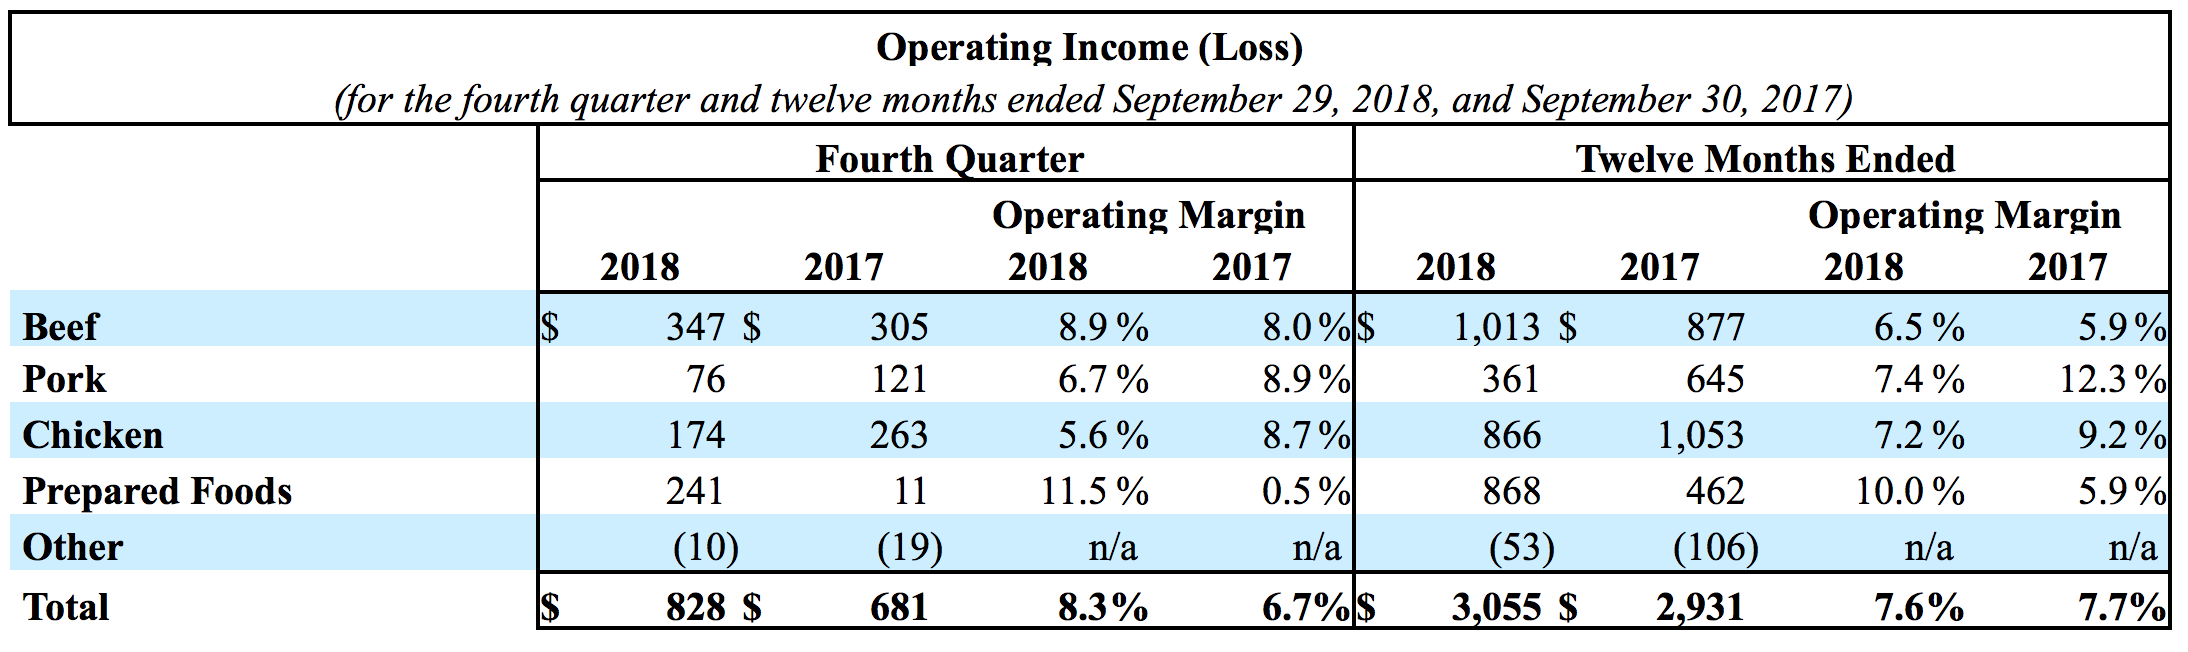 Operating Income Loss